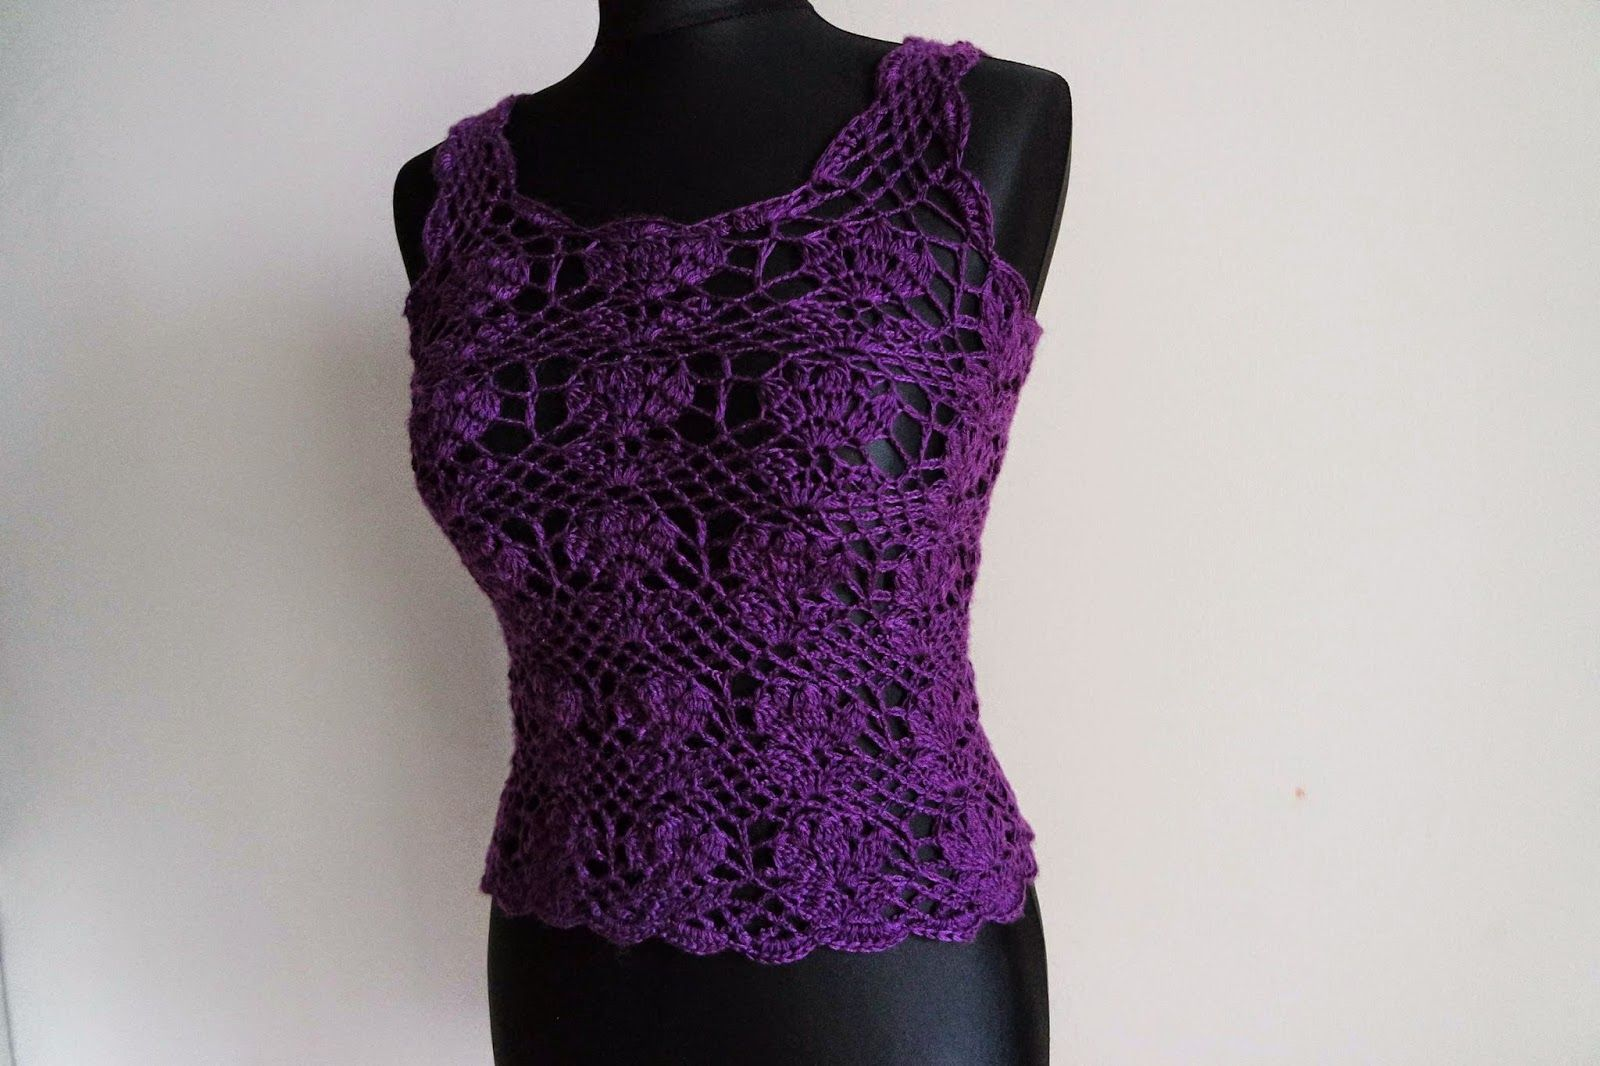 Free crochet patterns and video tutorials: how to crochet summer tulip top free pattern tutorial by marifu6a